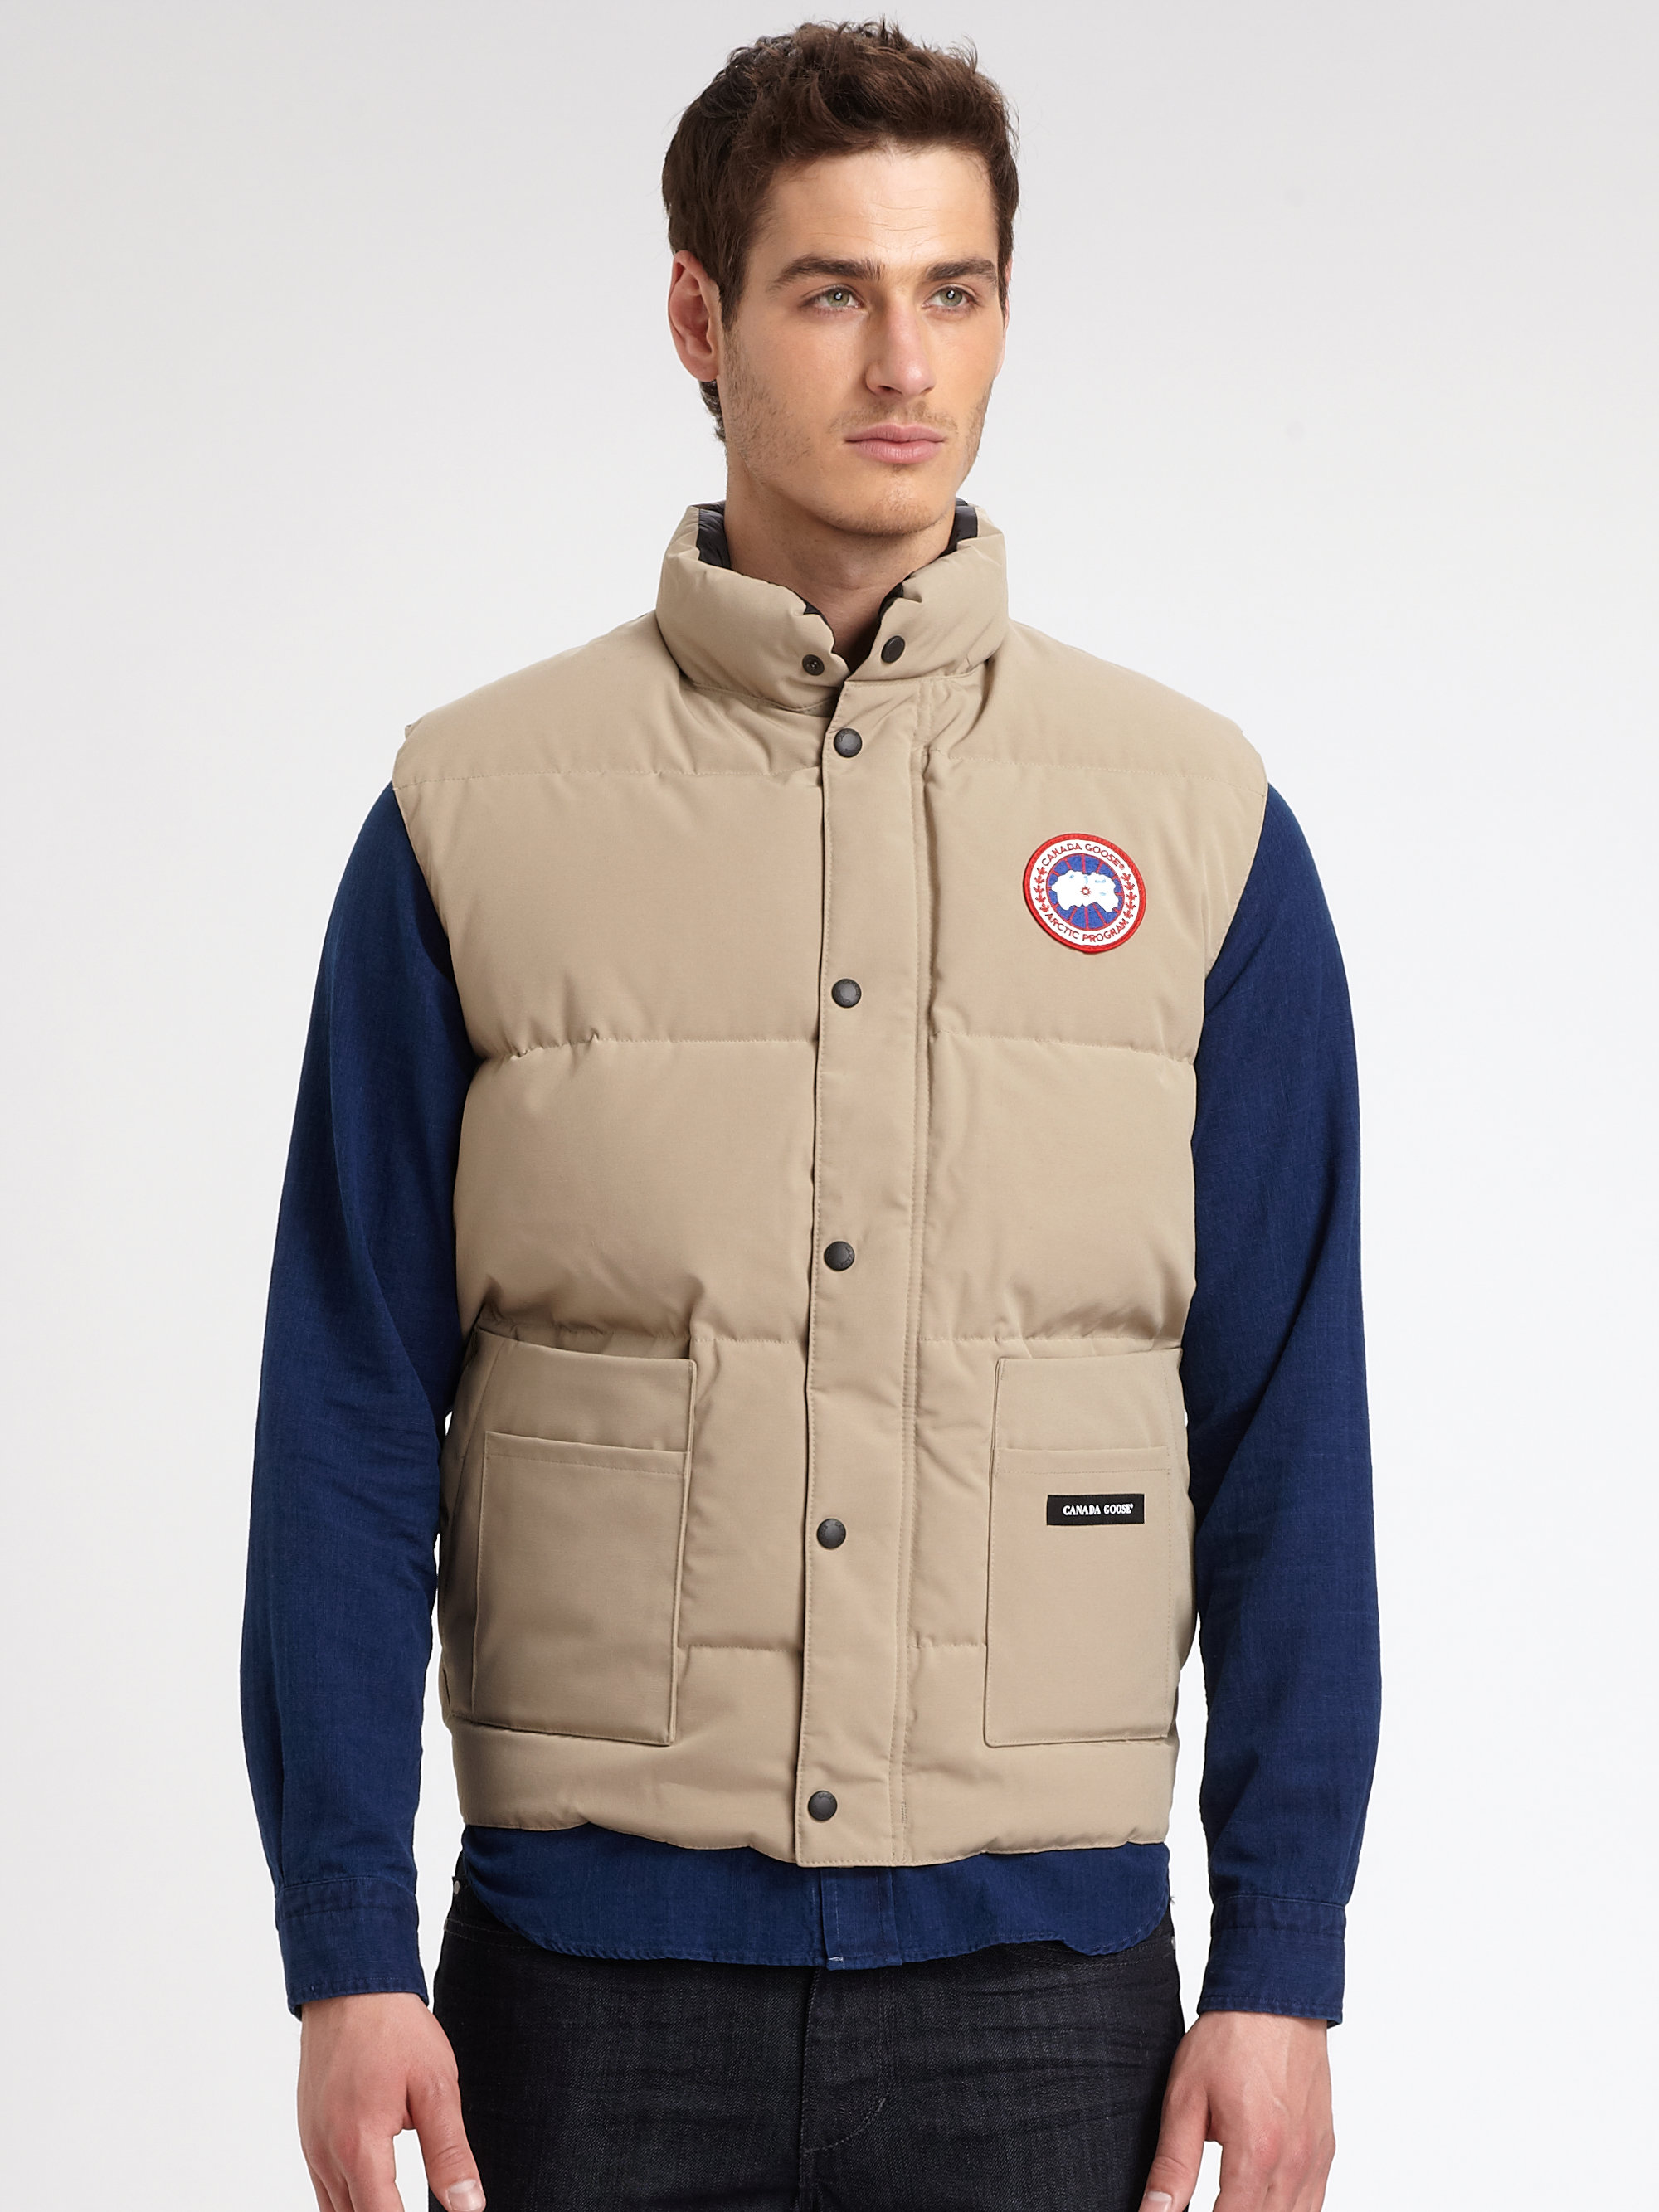 Canada Goose Freestyle Vest In Beige For Men Tan Lyst